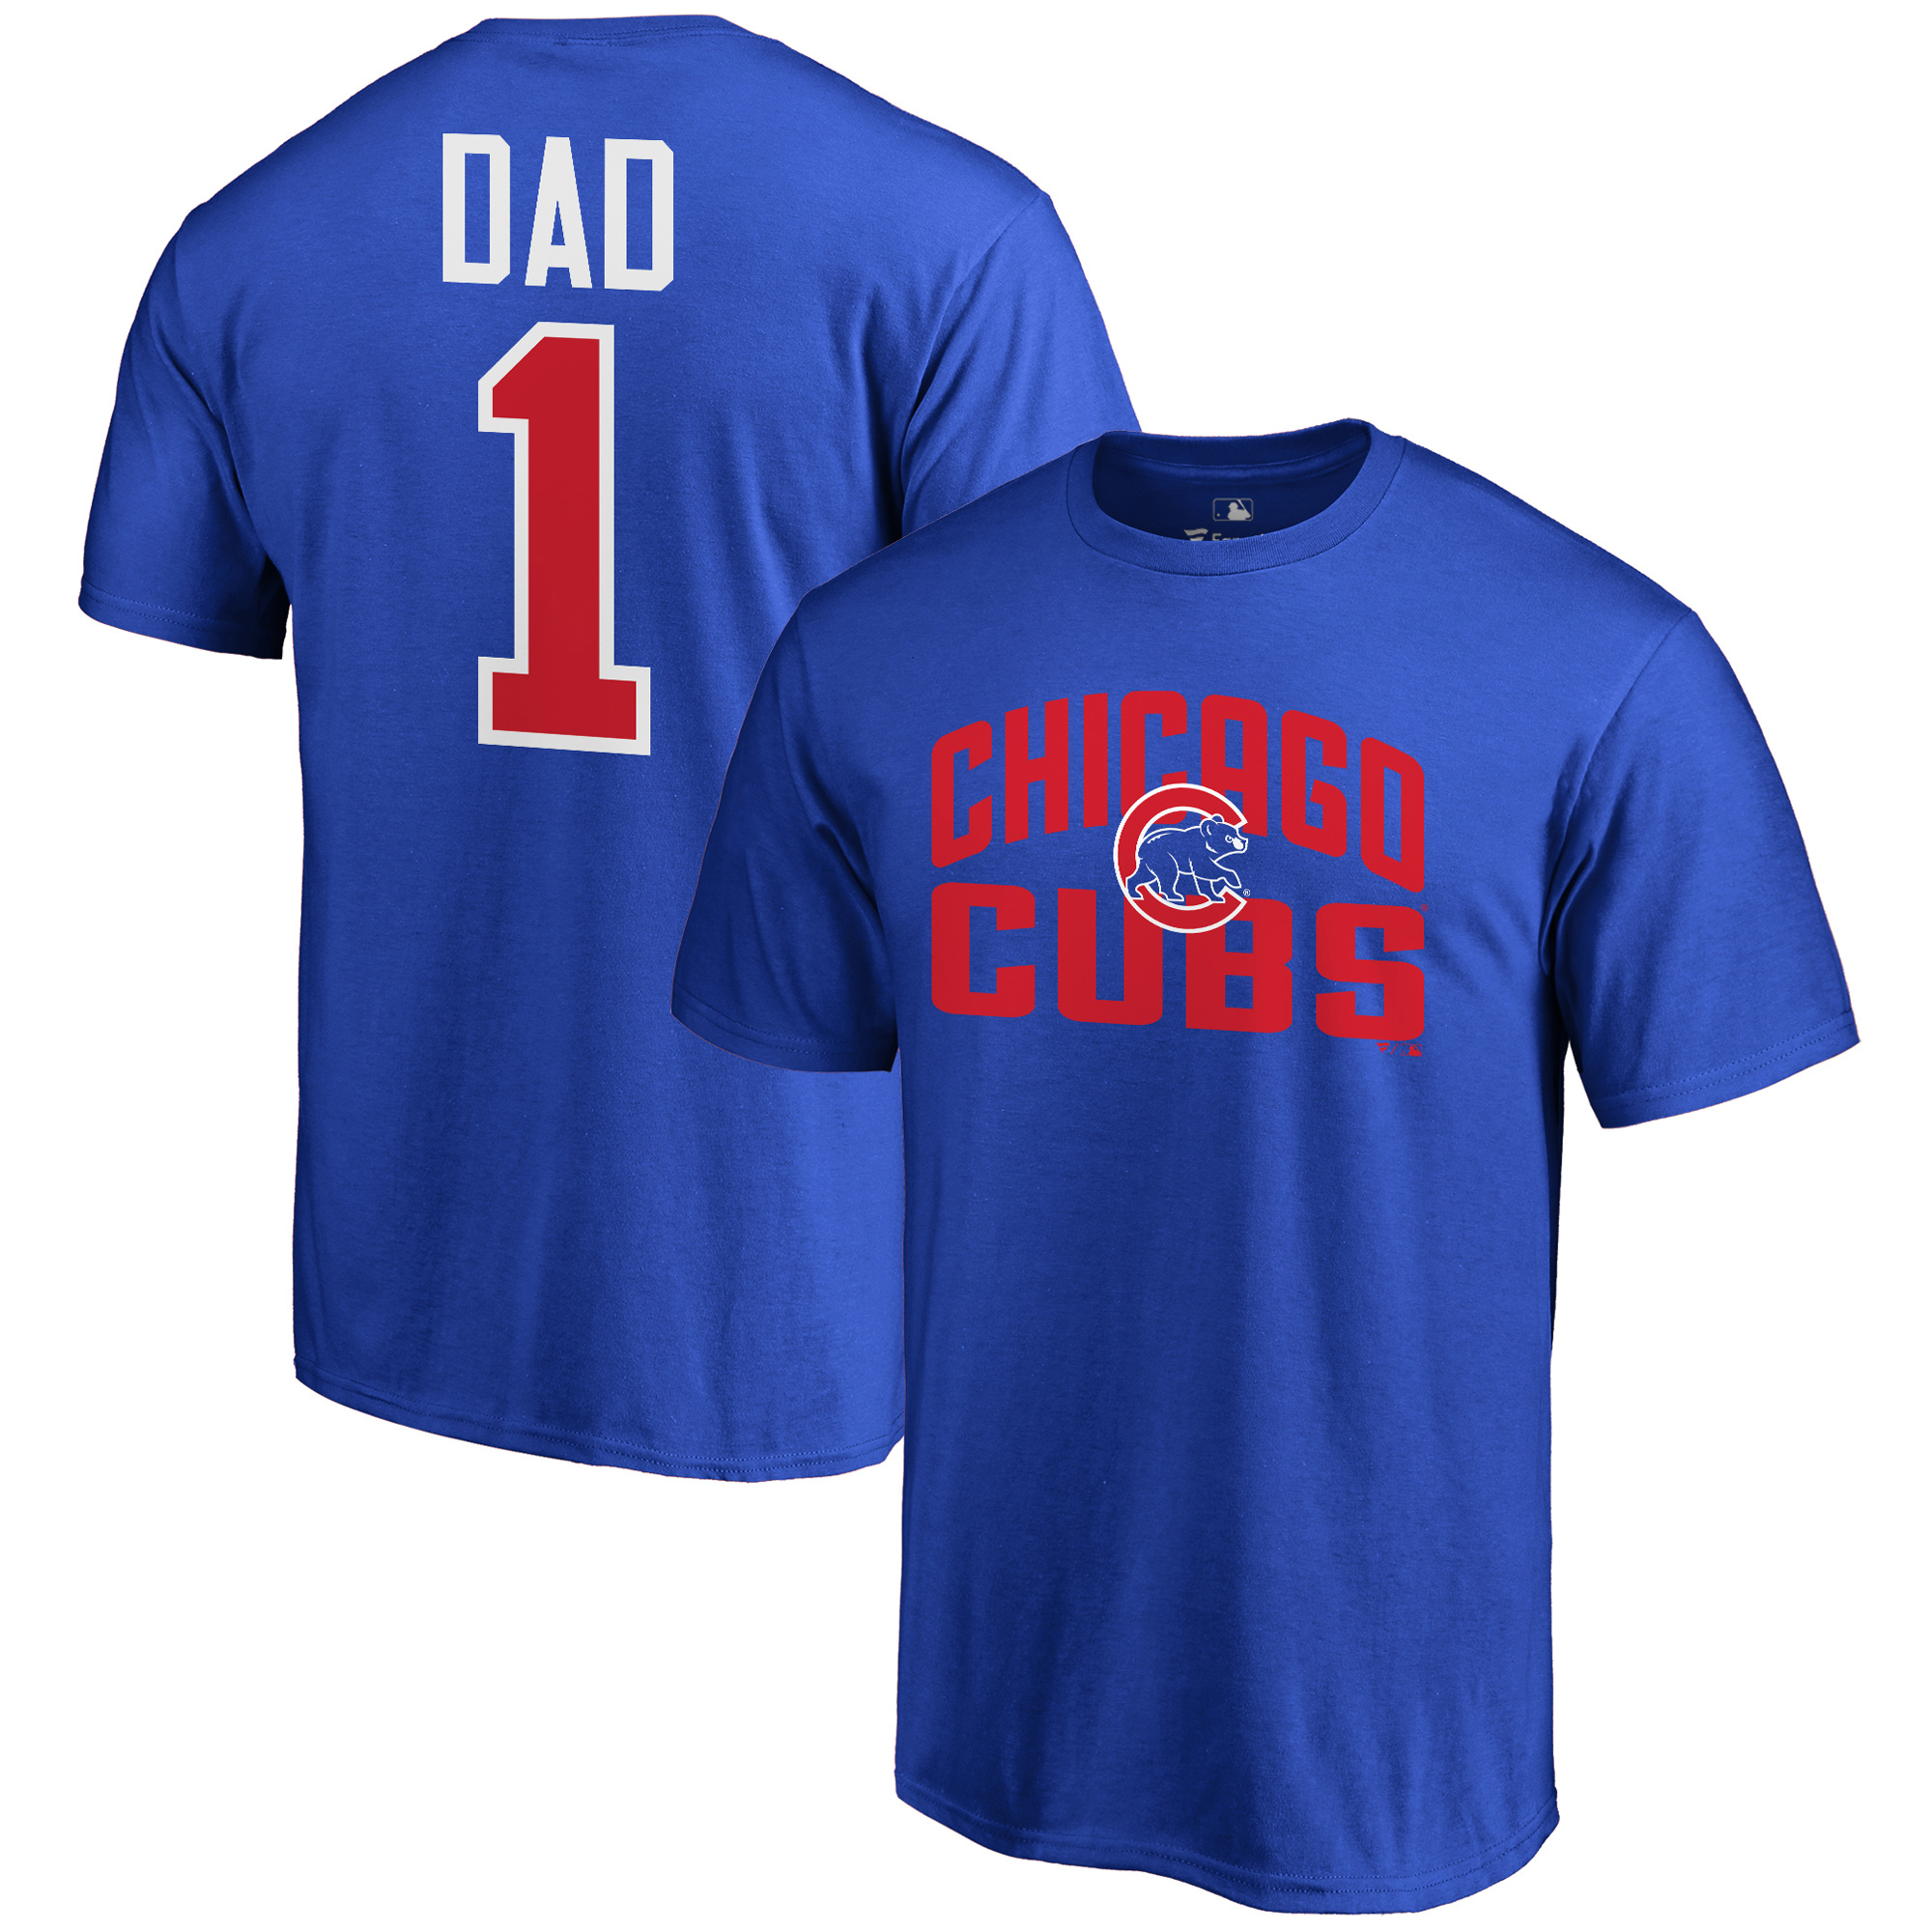 Chicago Cubs Fanatics Branded 2018 Father's Day Number 1 Dad T-Shirt - Royal